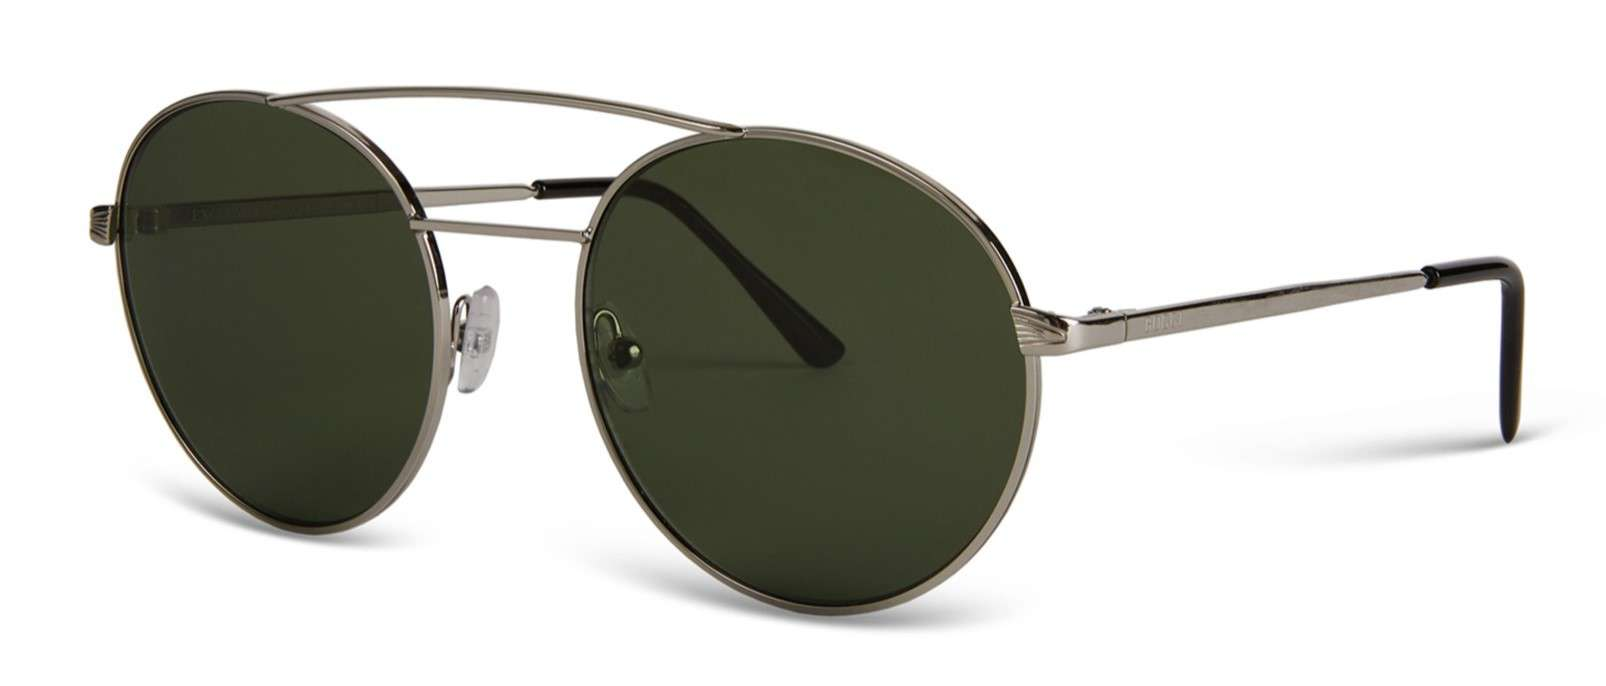 SanBabila sunglasses by Boggi Milano - green - side view